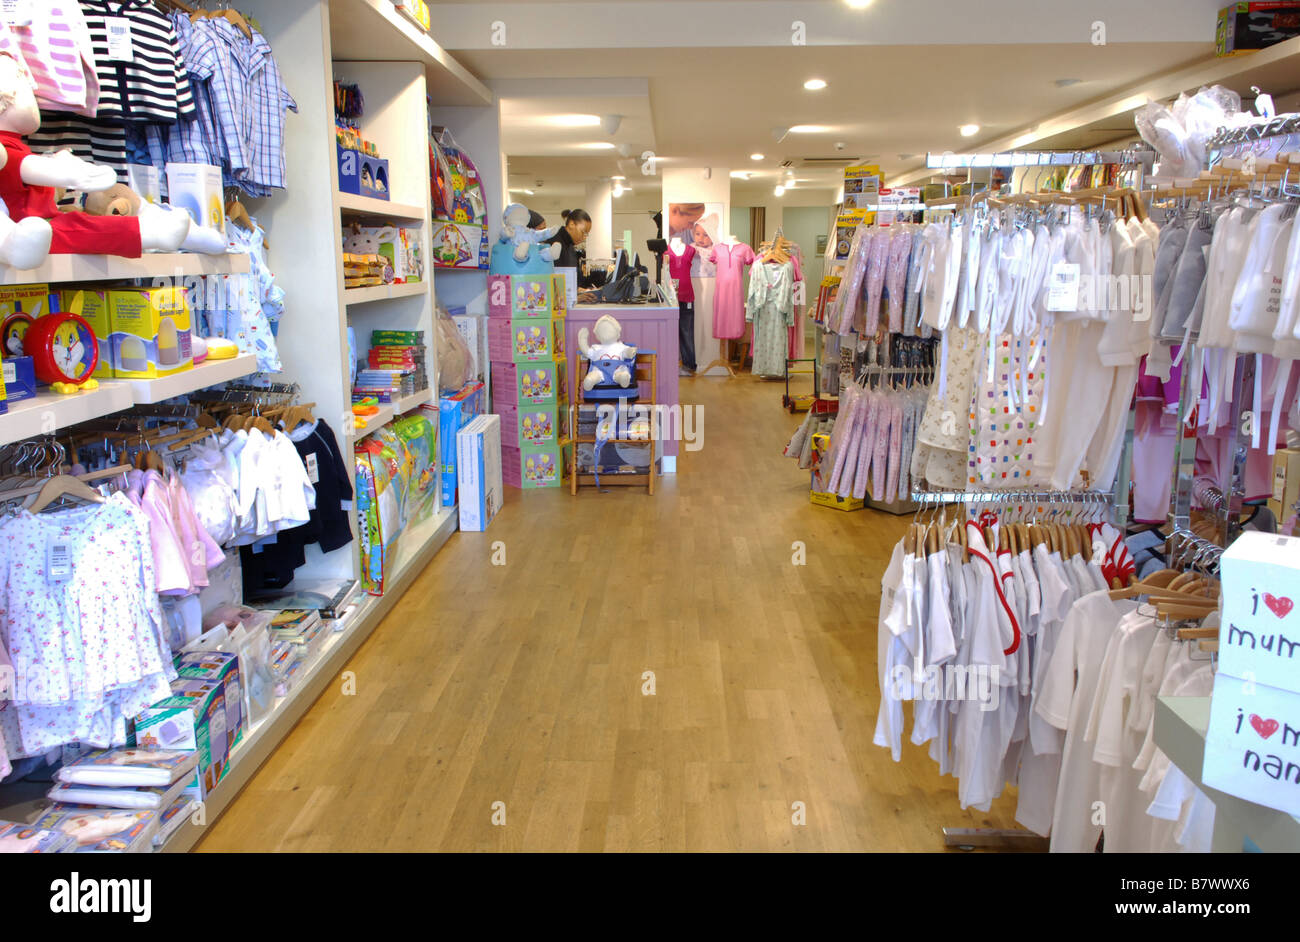 a4ee47a3815 Shelving and display racks stocked with baby clothing for sale in Blooming  Marvellous the maternity and baby shop.